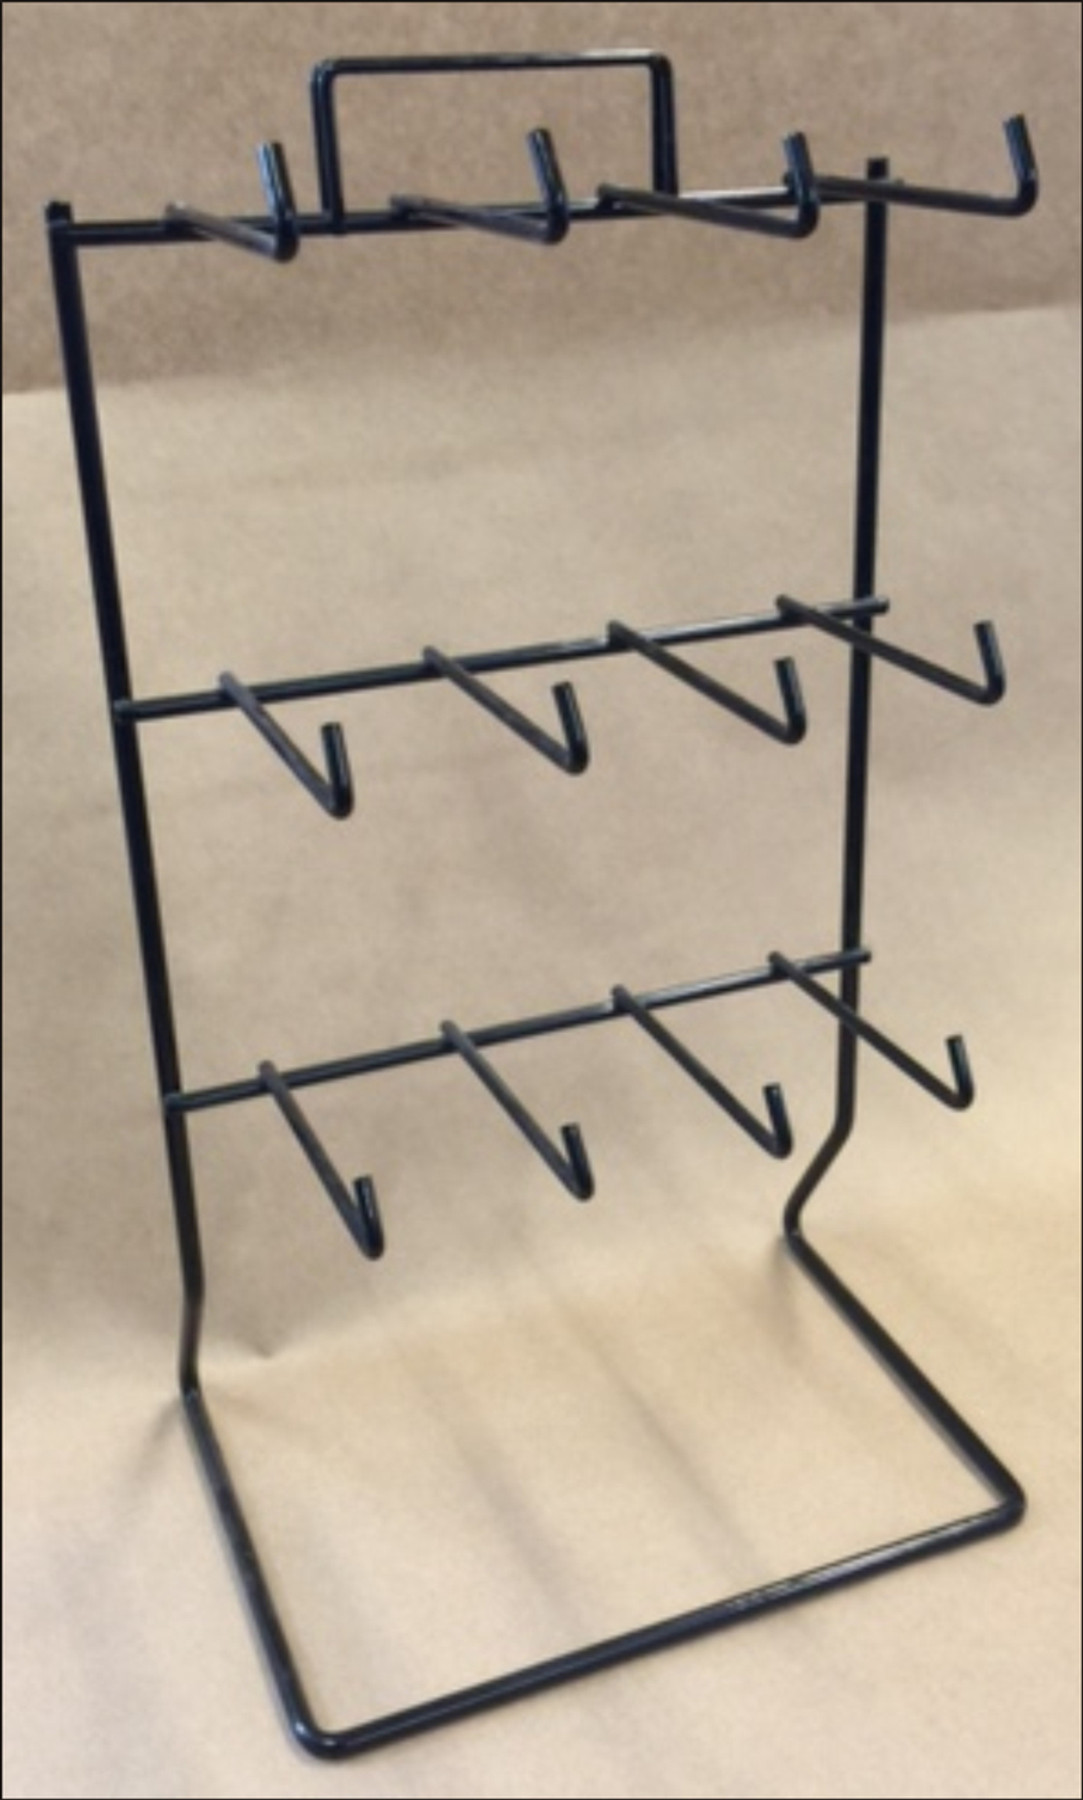 Counter Top Black Wire Keychain 12 Peg Display Rack DR-KC